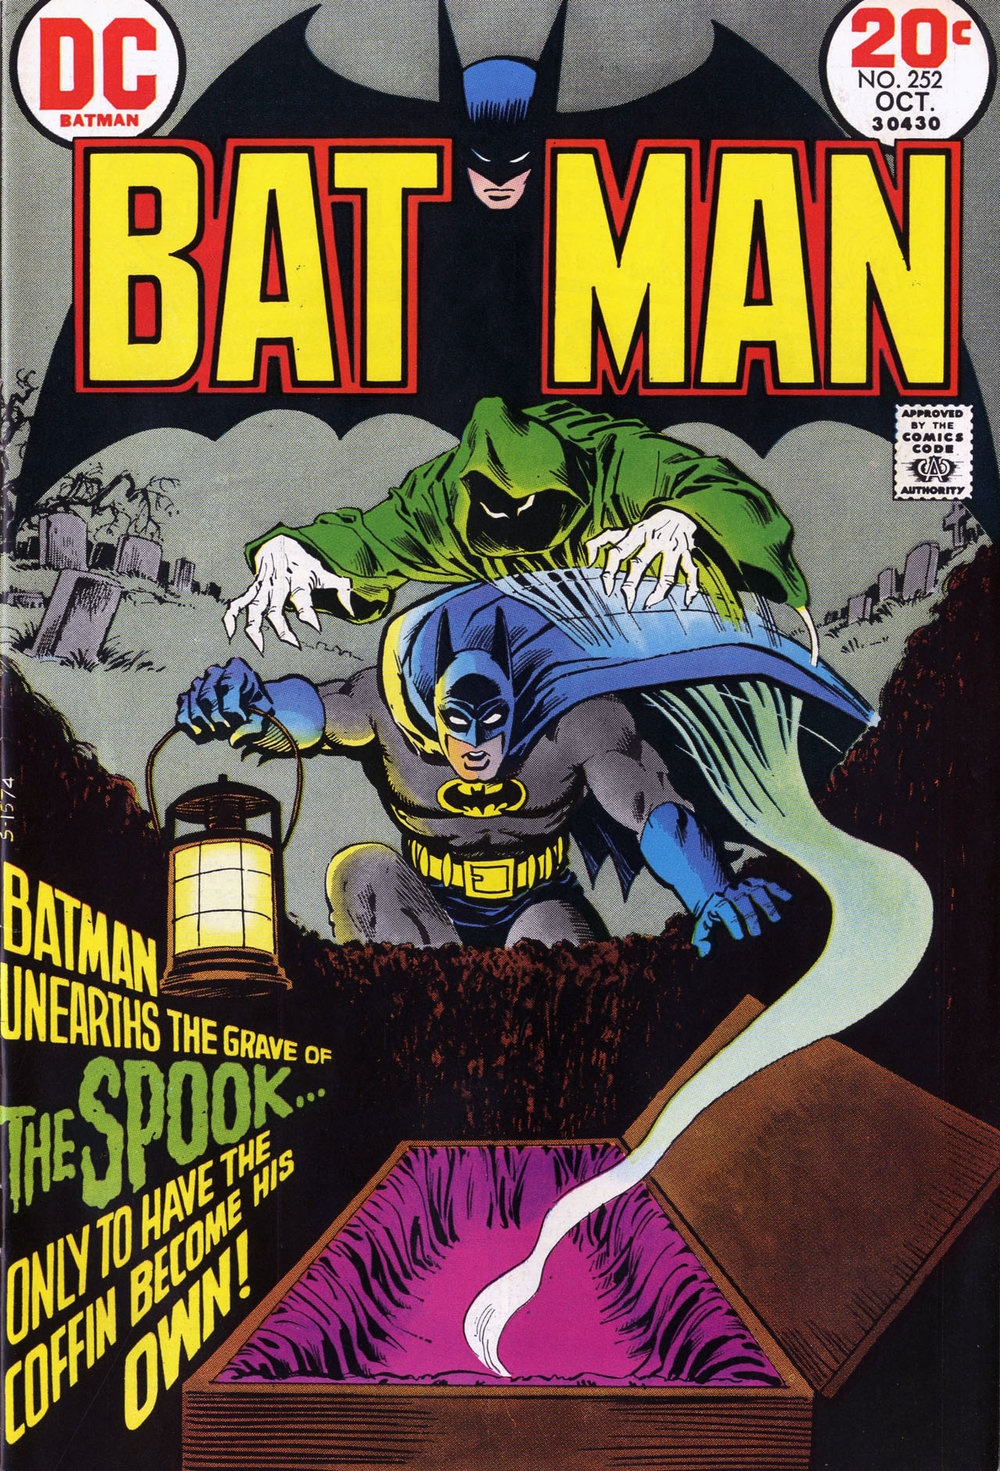 Batman (1940) #208, cover by Nick Cardy.